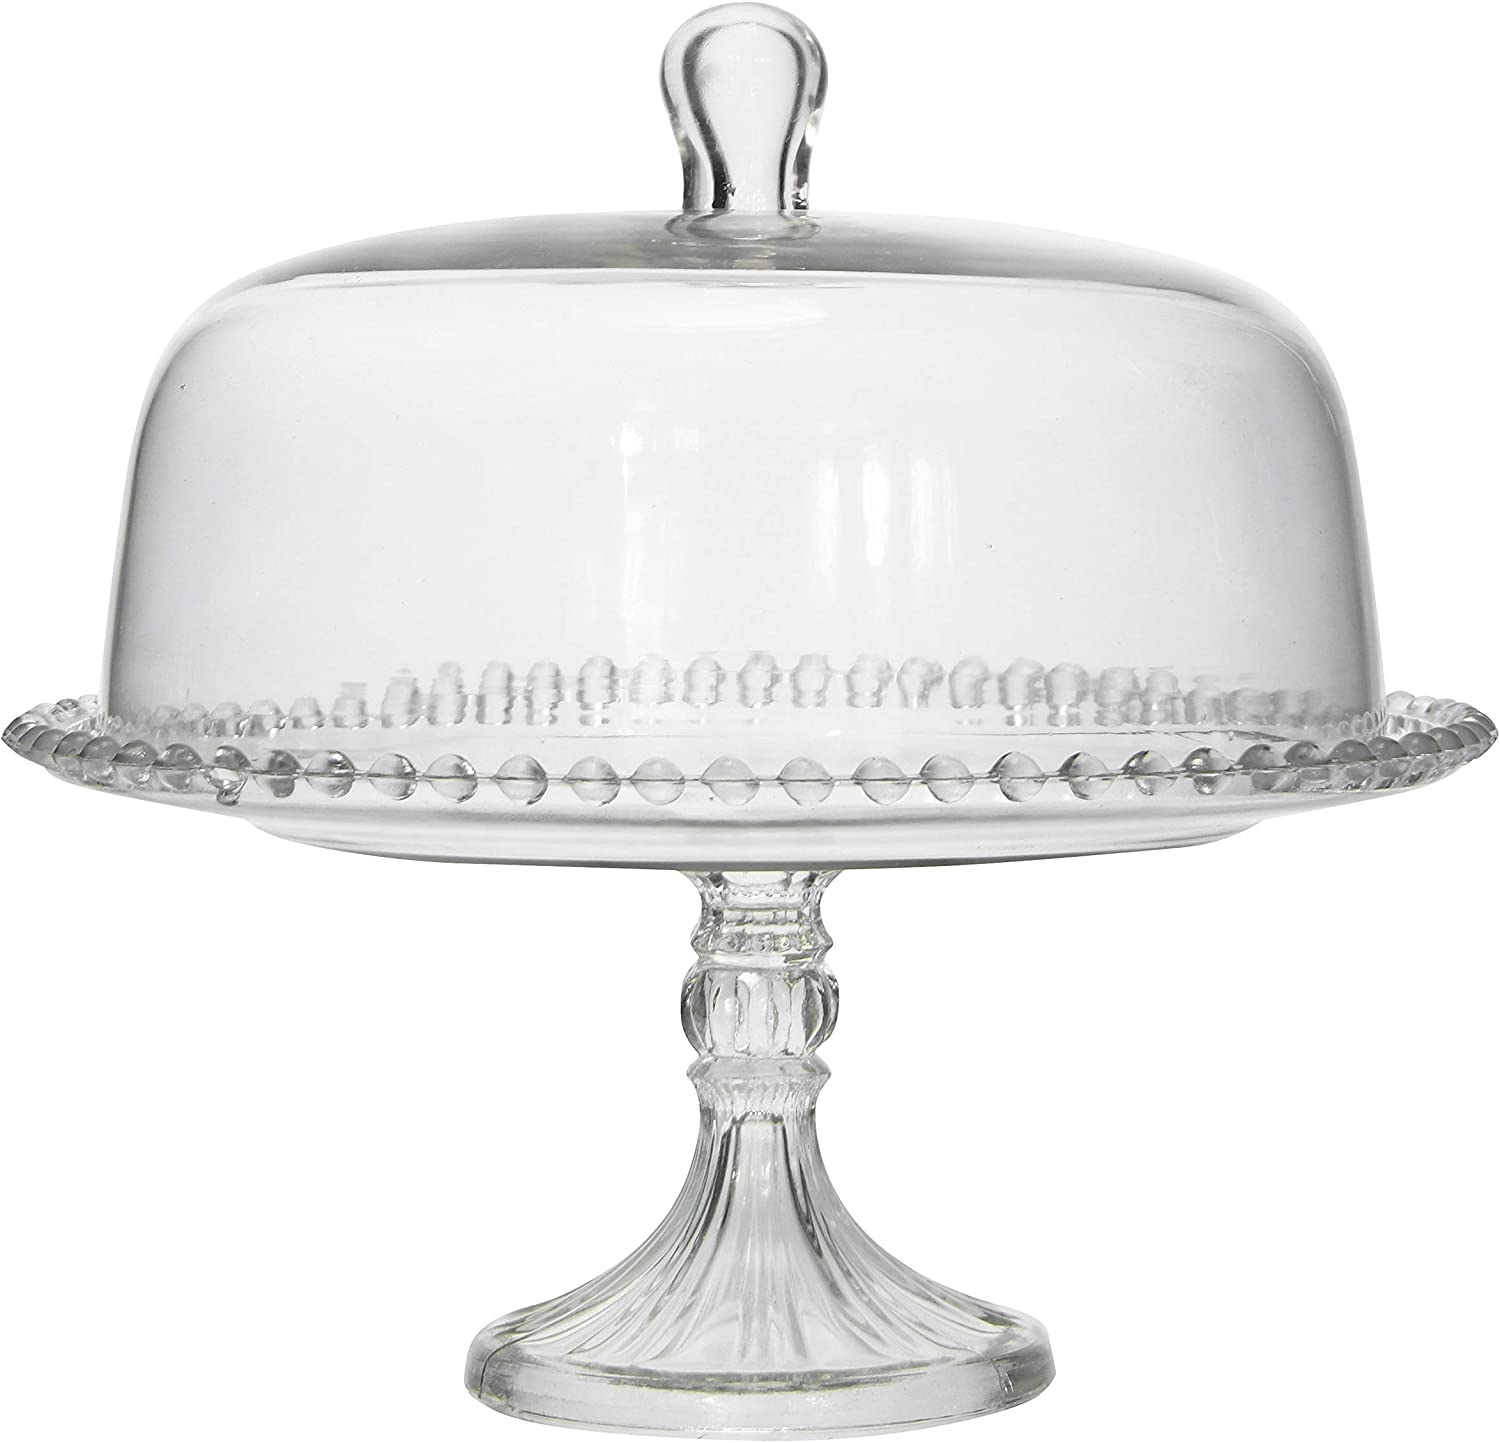 Creative Co-op Round Glass Hobnail Edge and Cloche Cake Stand, Clear